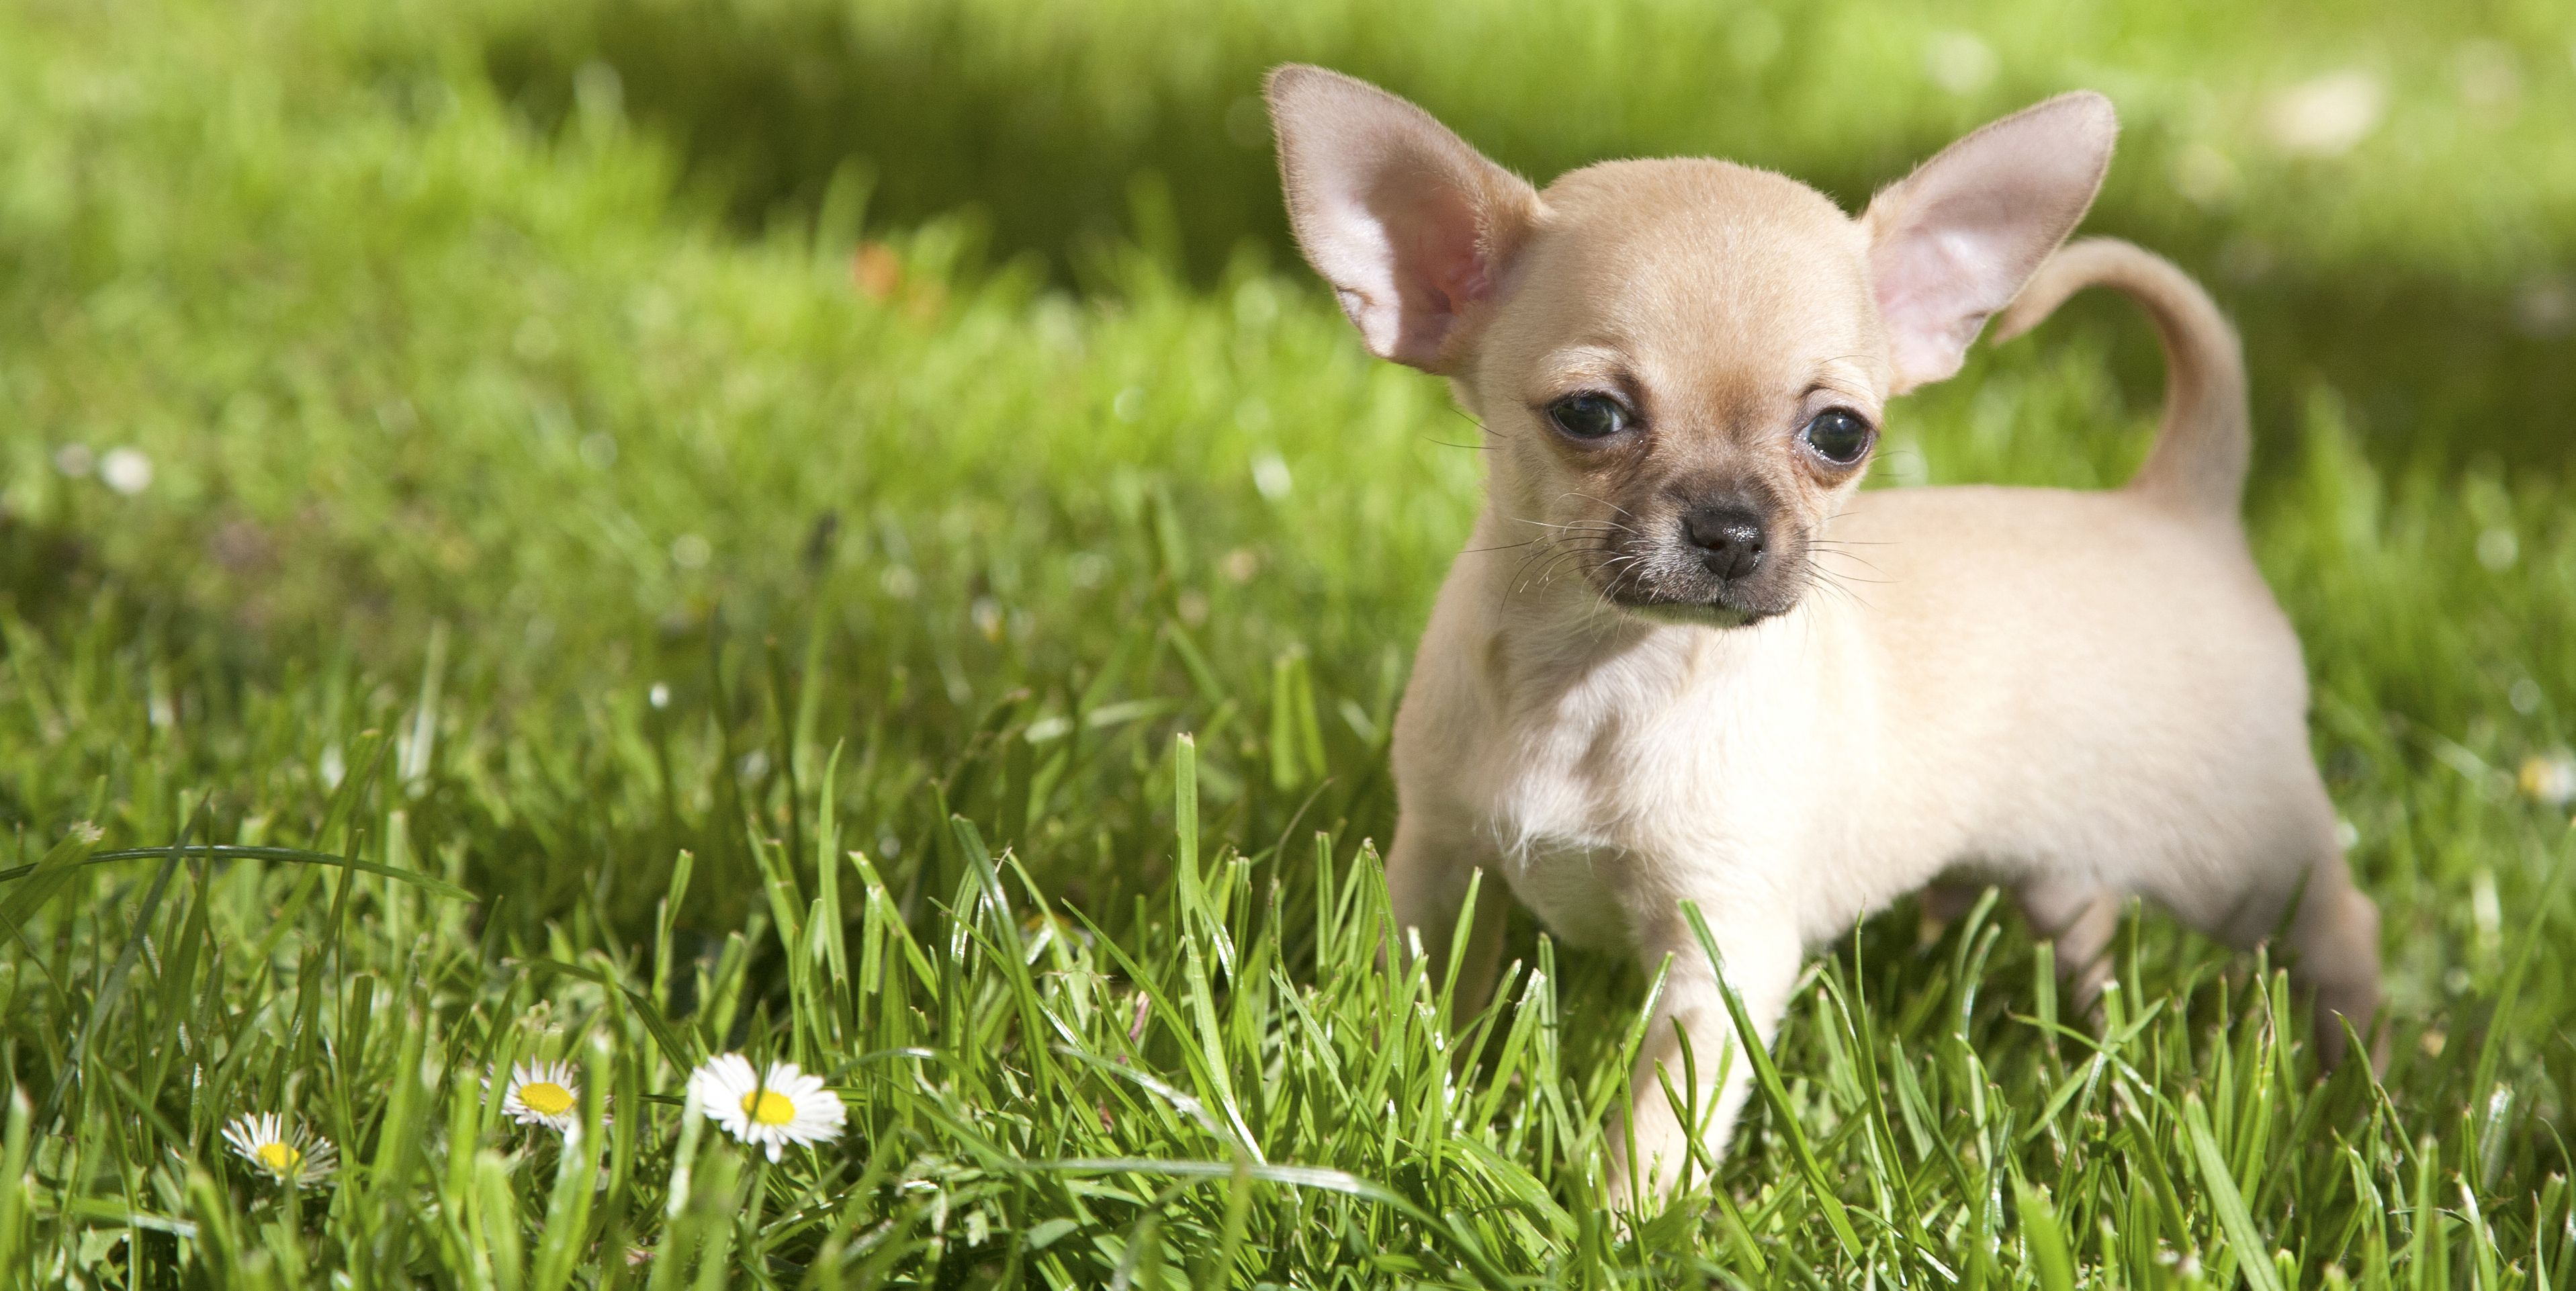 Dog Breeds Chihuahua - Dogs Of Days Summer